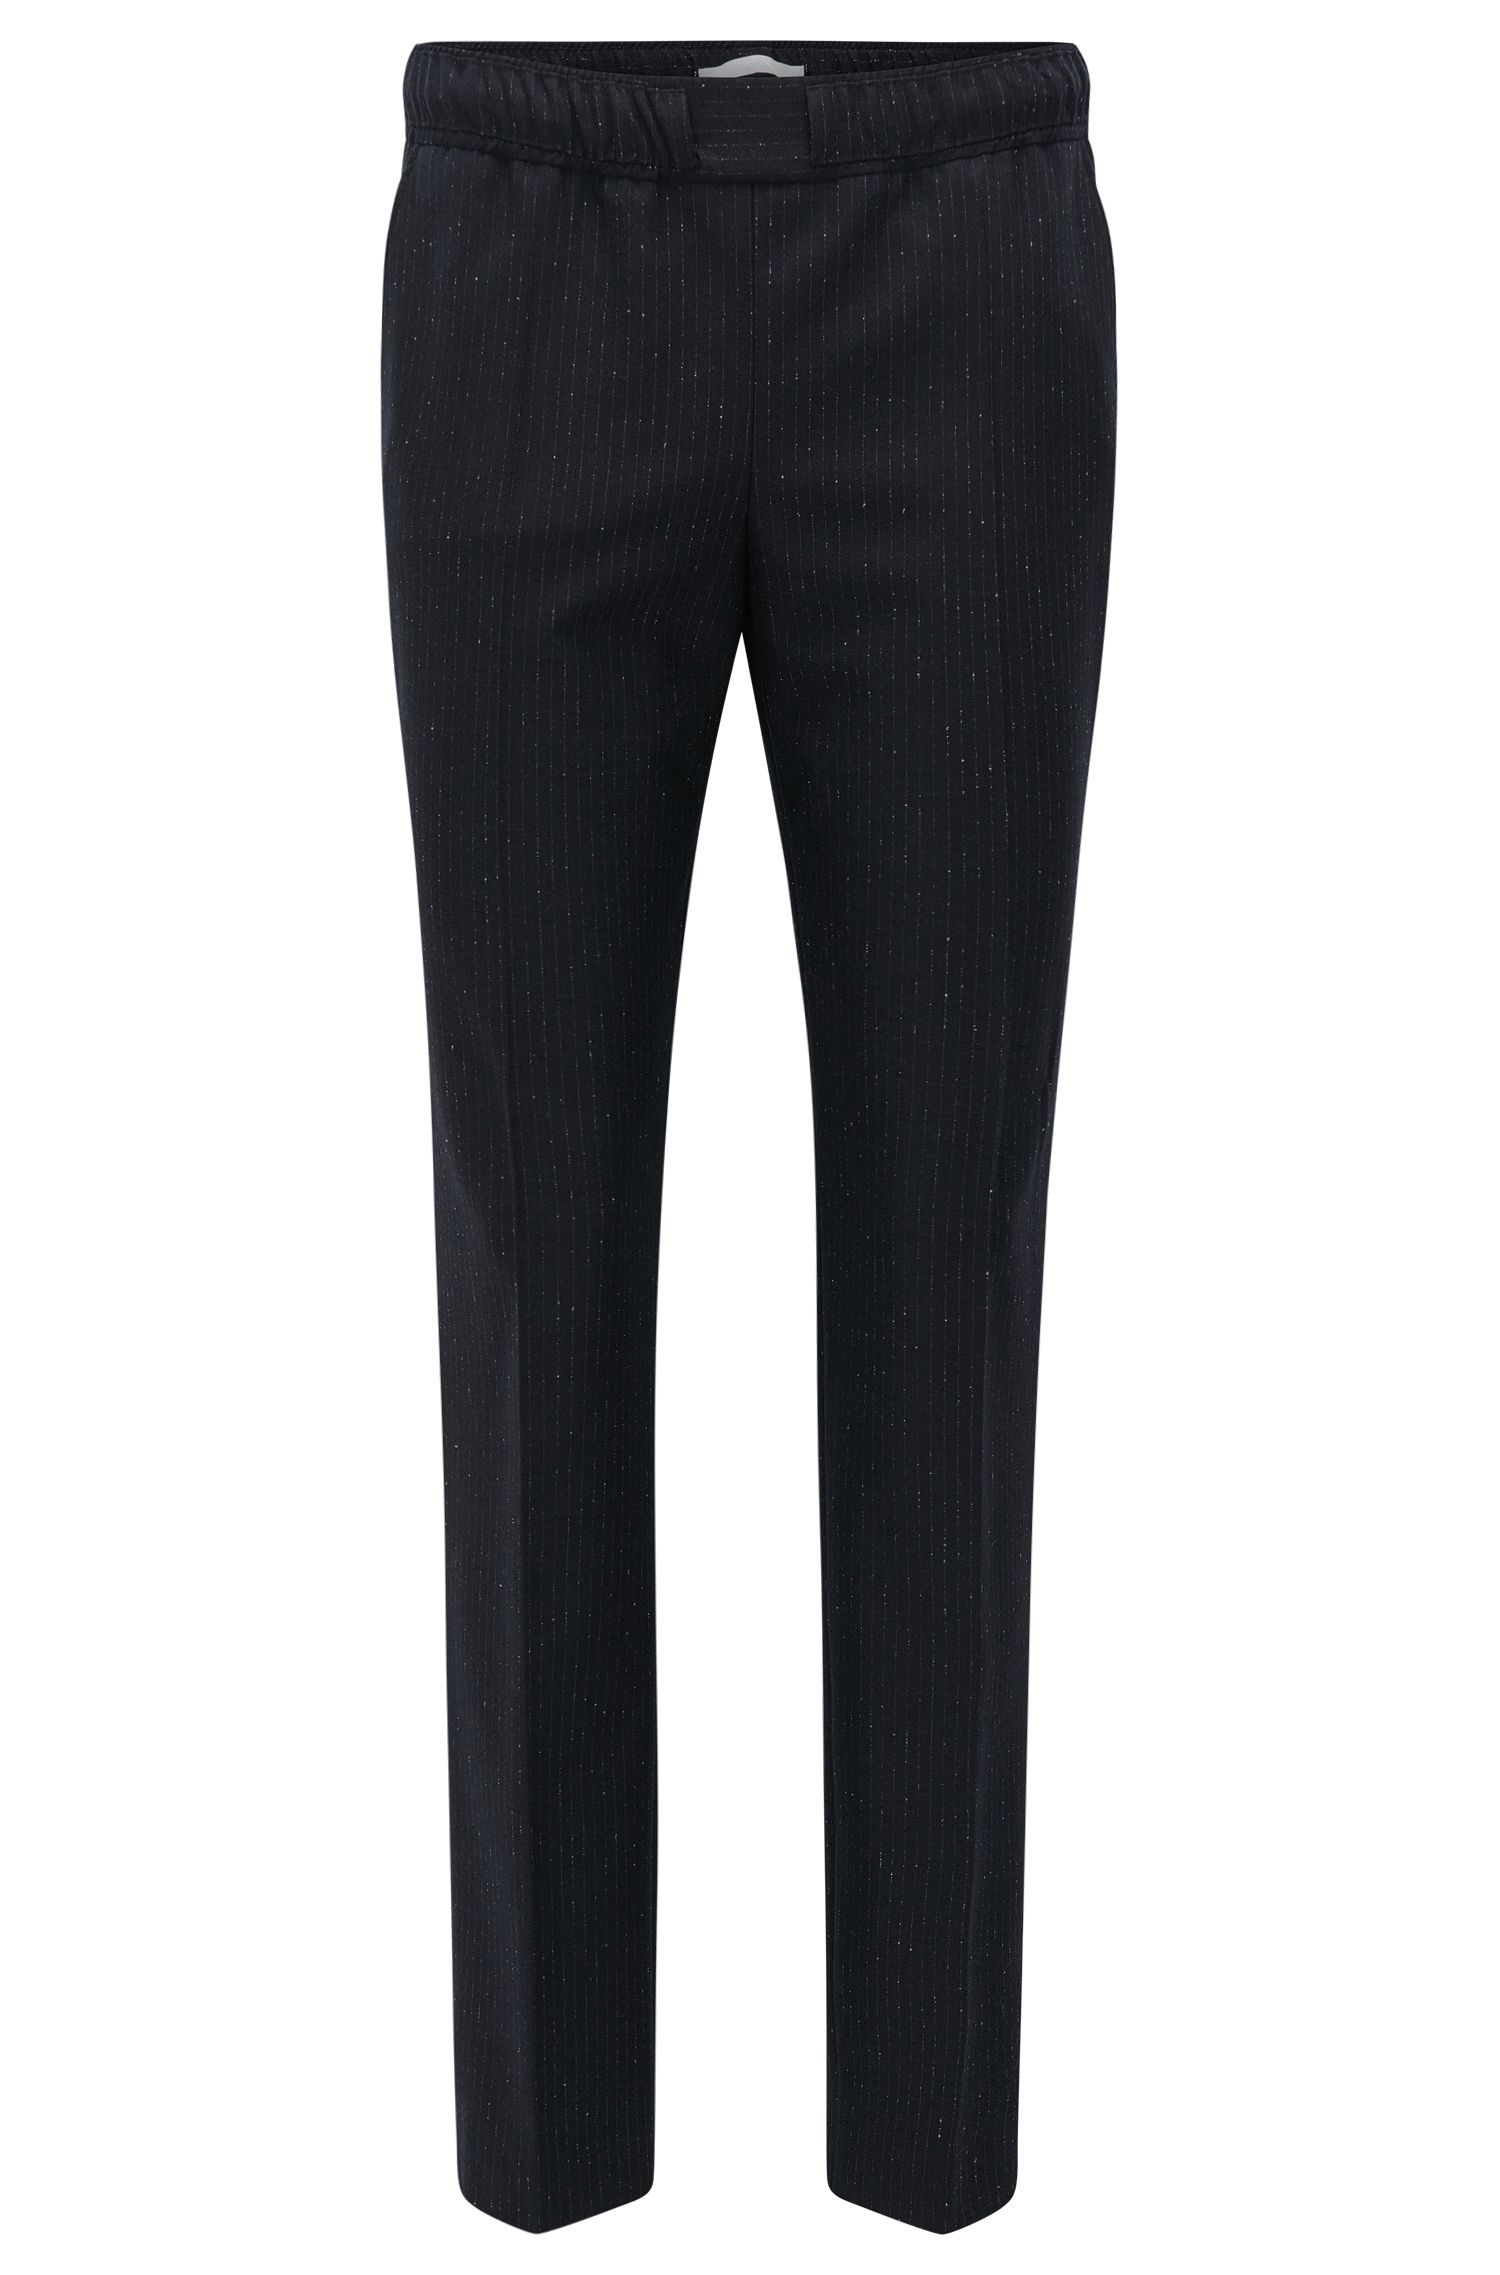 Pinstripe Stretch Virgin Wool Jogger Pant | Torana